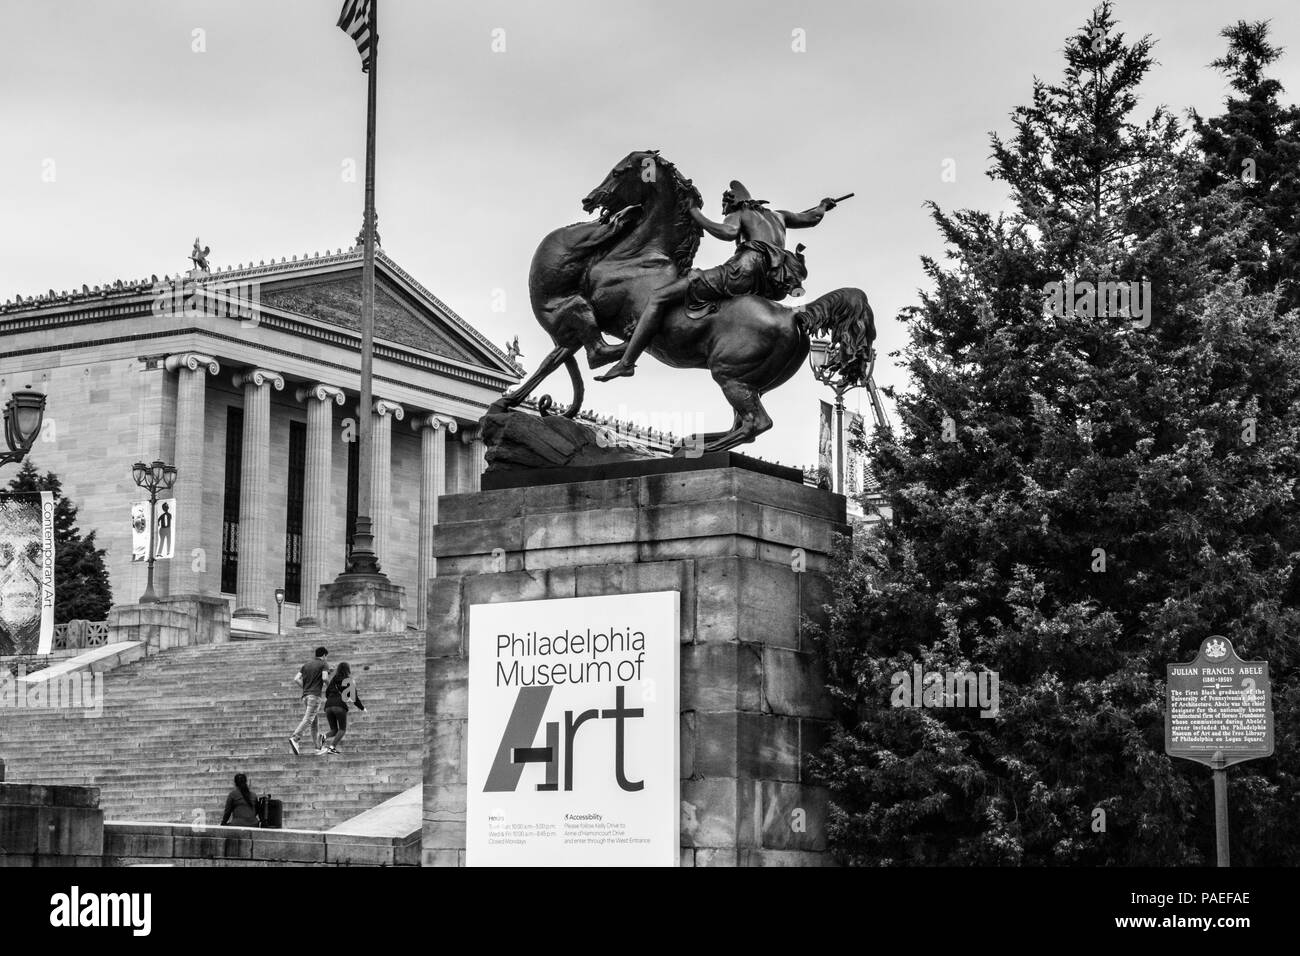 'The Mounted Amazon Attacked by a Panther' - Statue on Rocky Steps, Eakins Oval, Philadelphia, USA - Stock Image